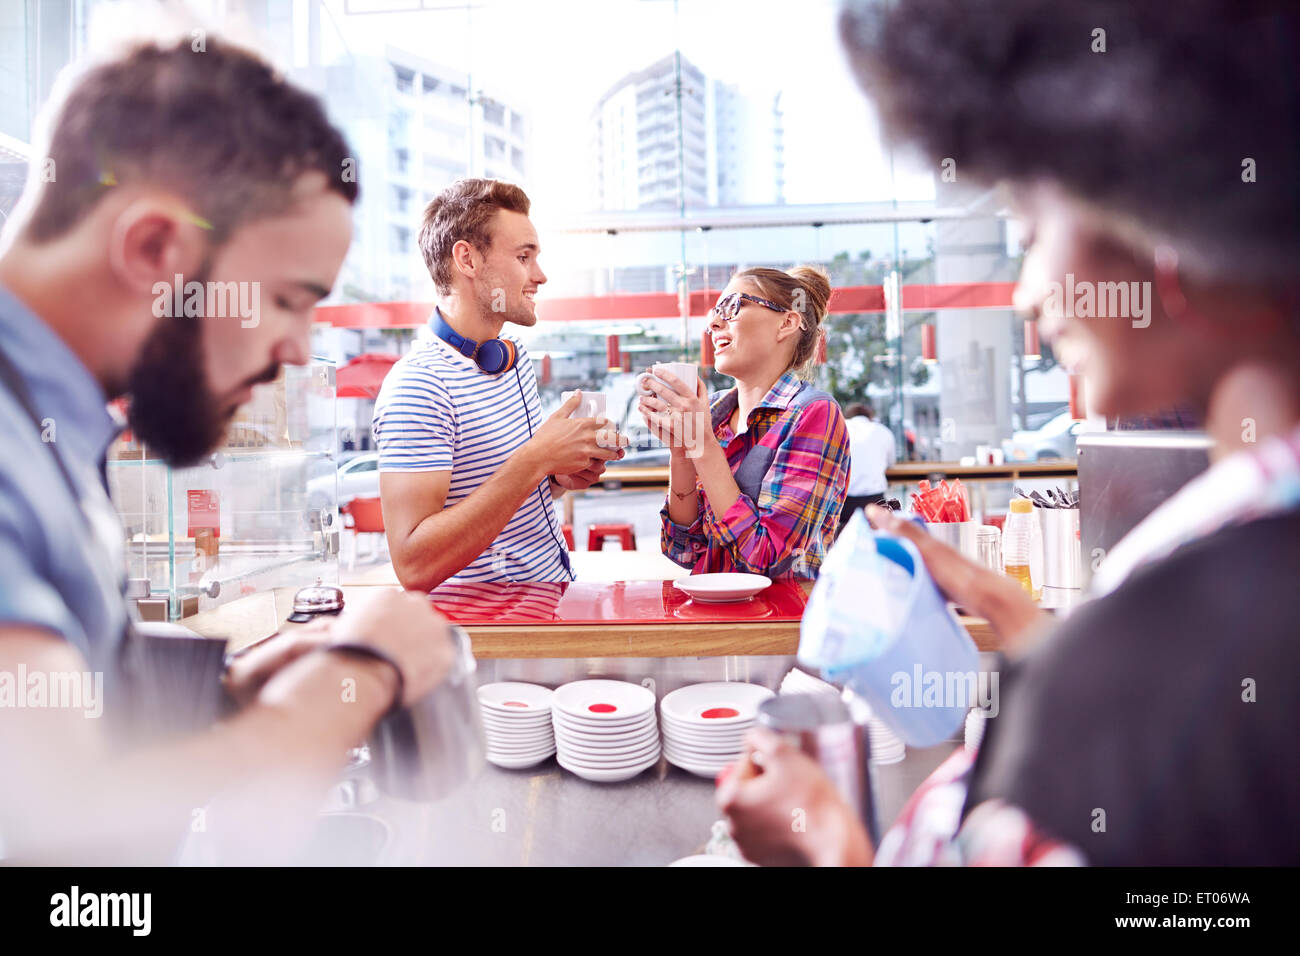 Couple talking and drinking coffee in cafe - Stock Image